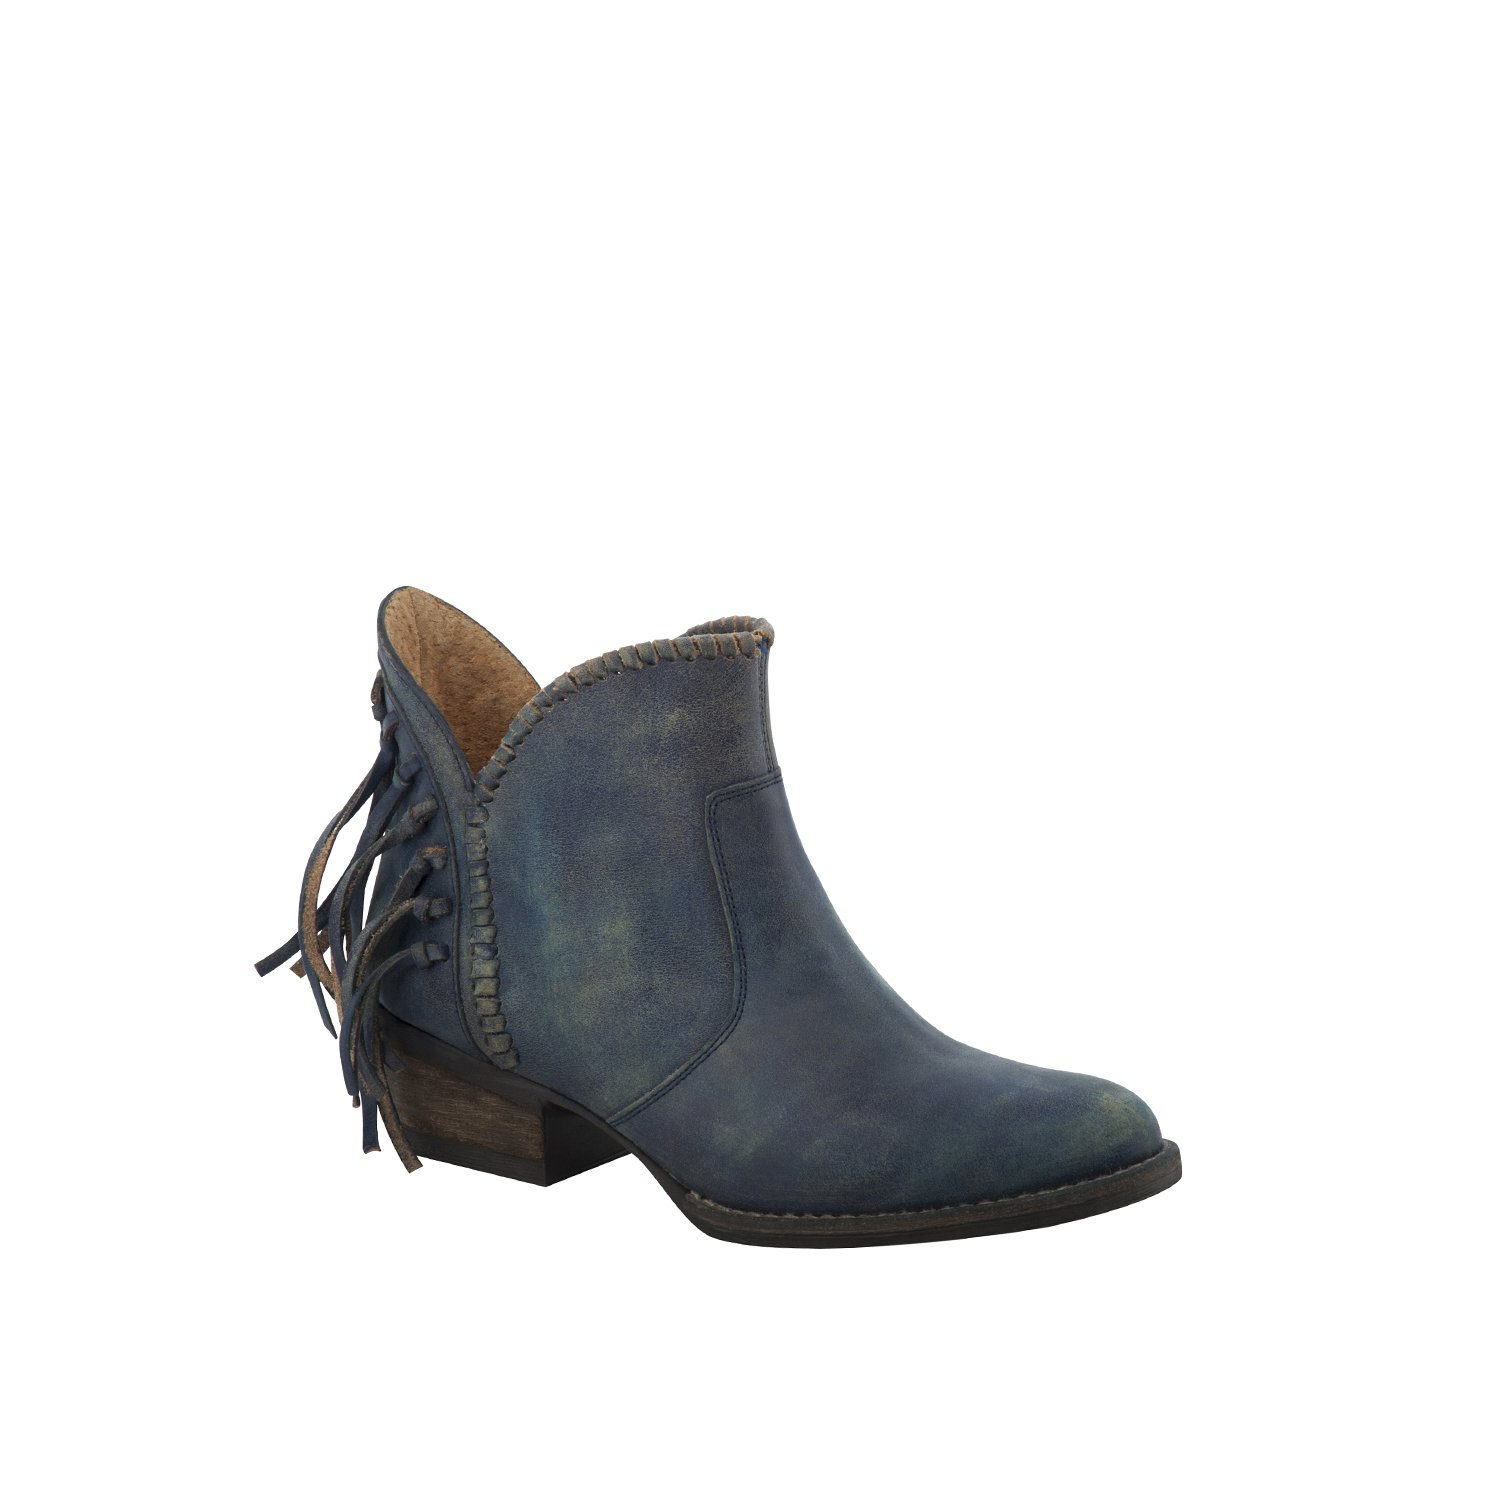 Corral Urban Women's Back Fringe Braided Top Blue Jean Leather Shortie Boots